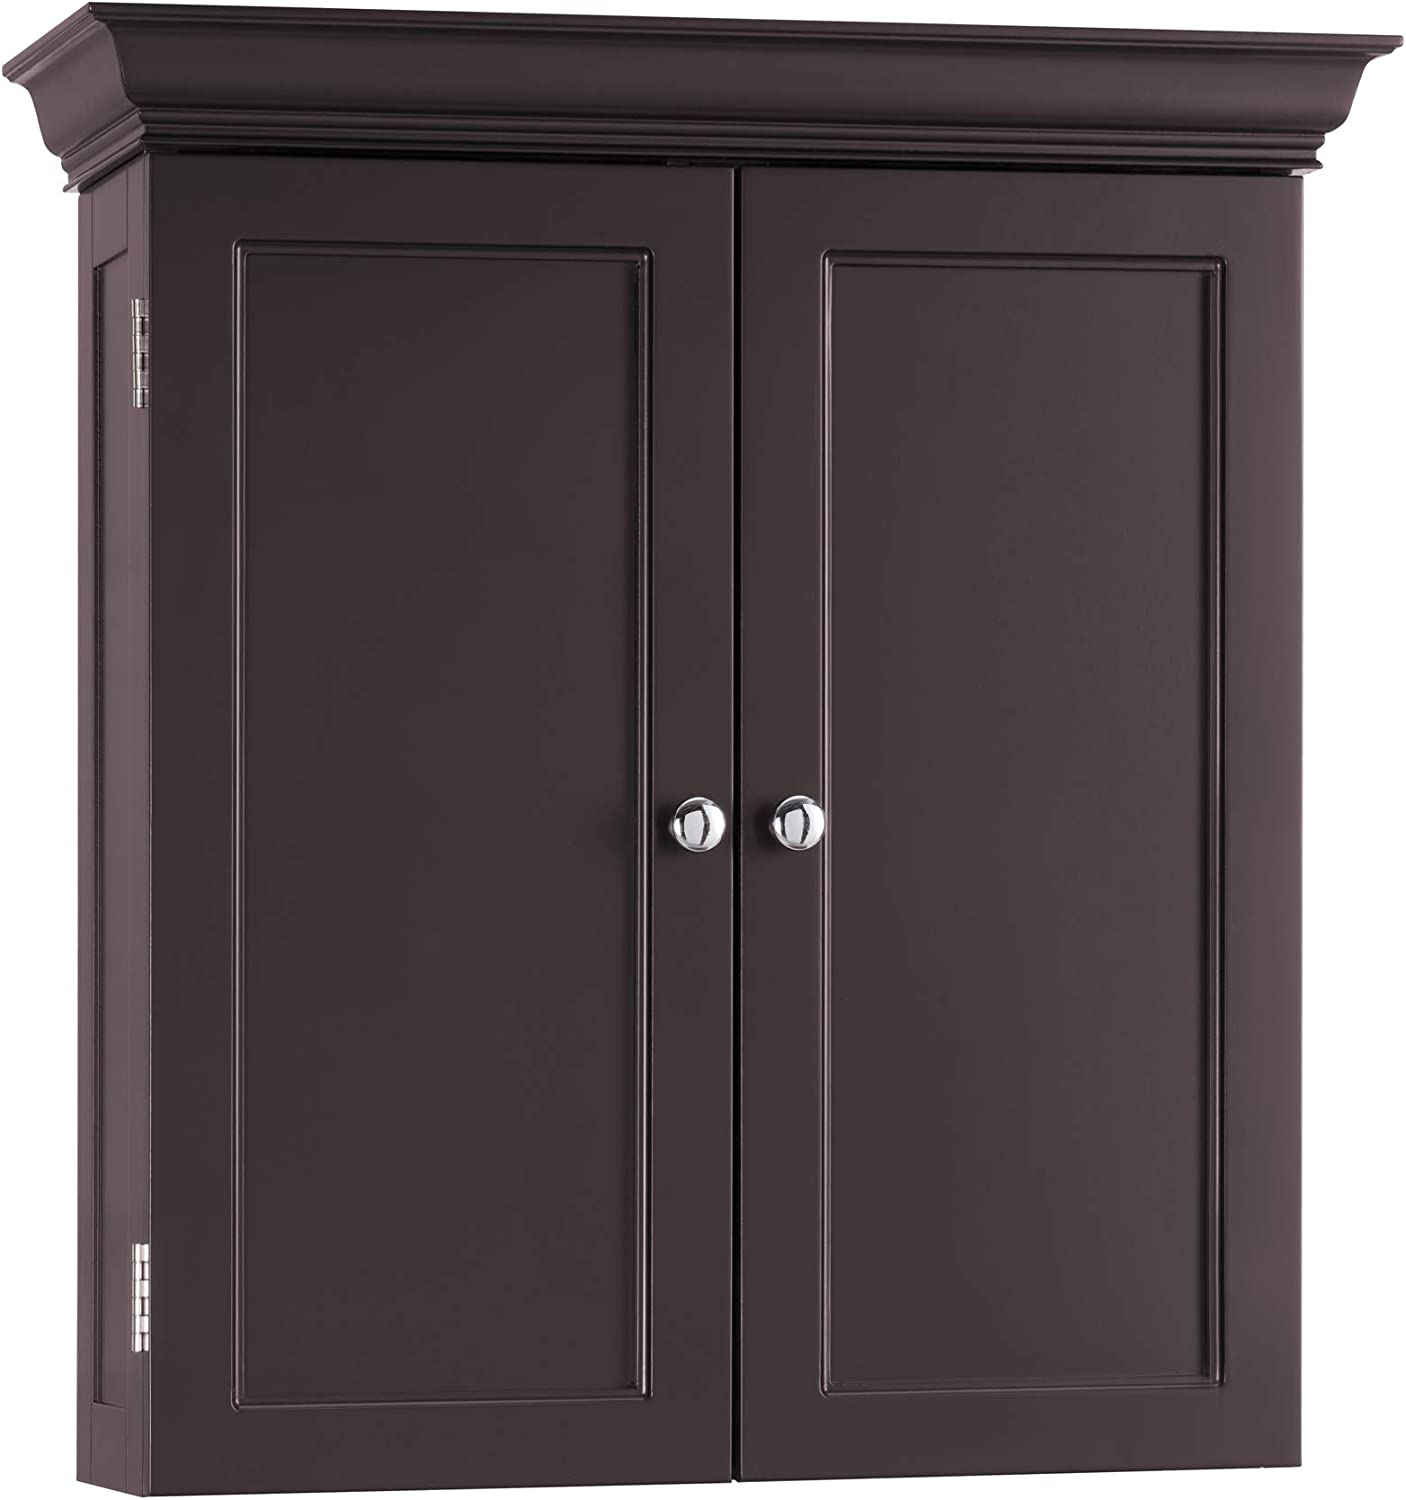 Elegant Home Fashion Stratford Wall Cabinet with 2 Doors-Espresso